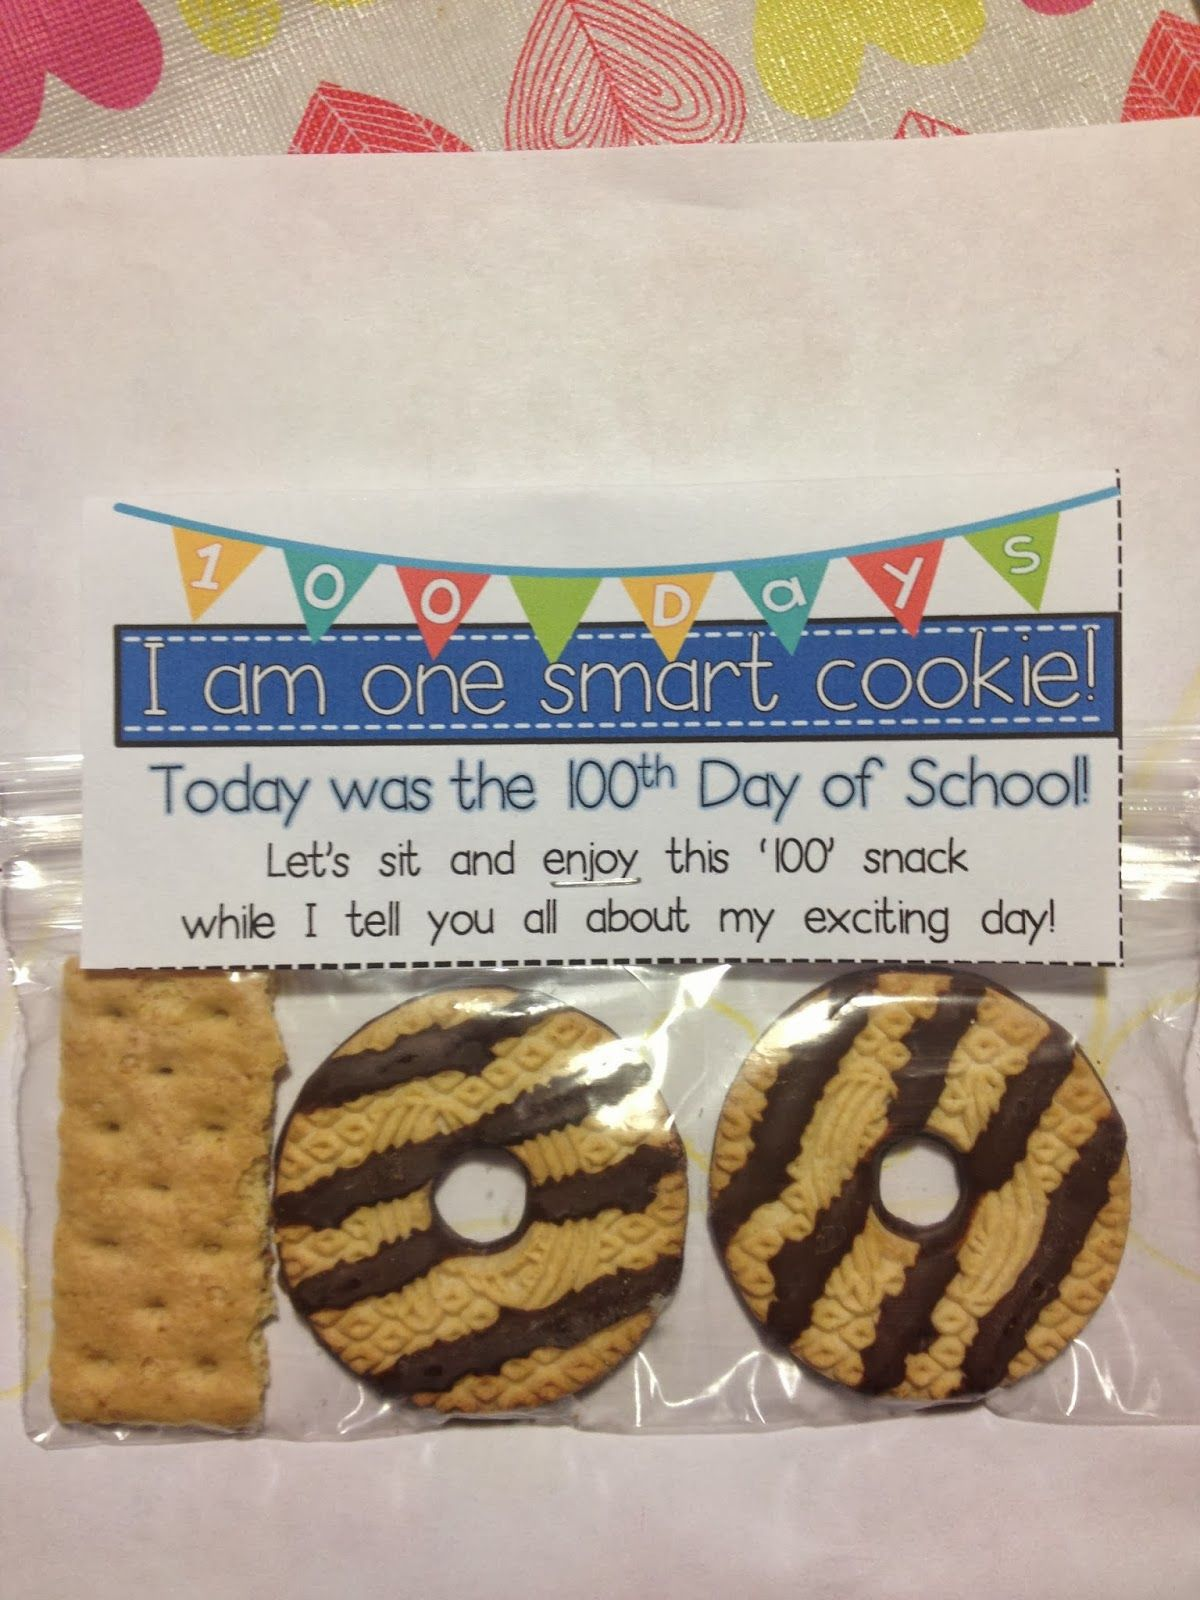 The 100th Day Finally Came Nice treat to celebrate the day